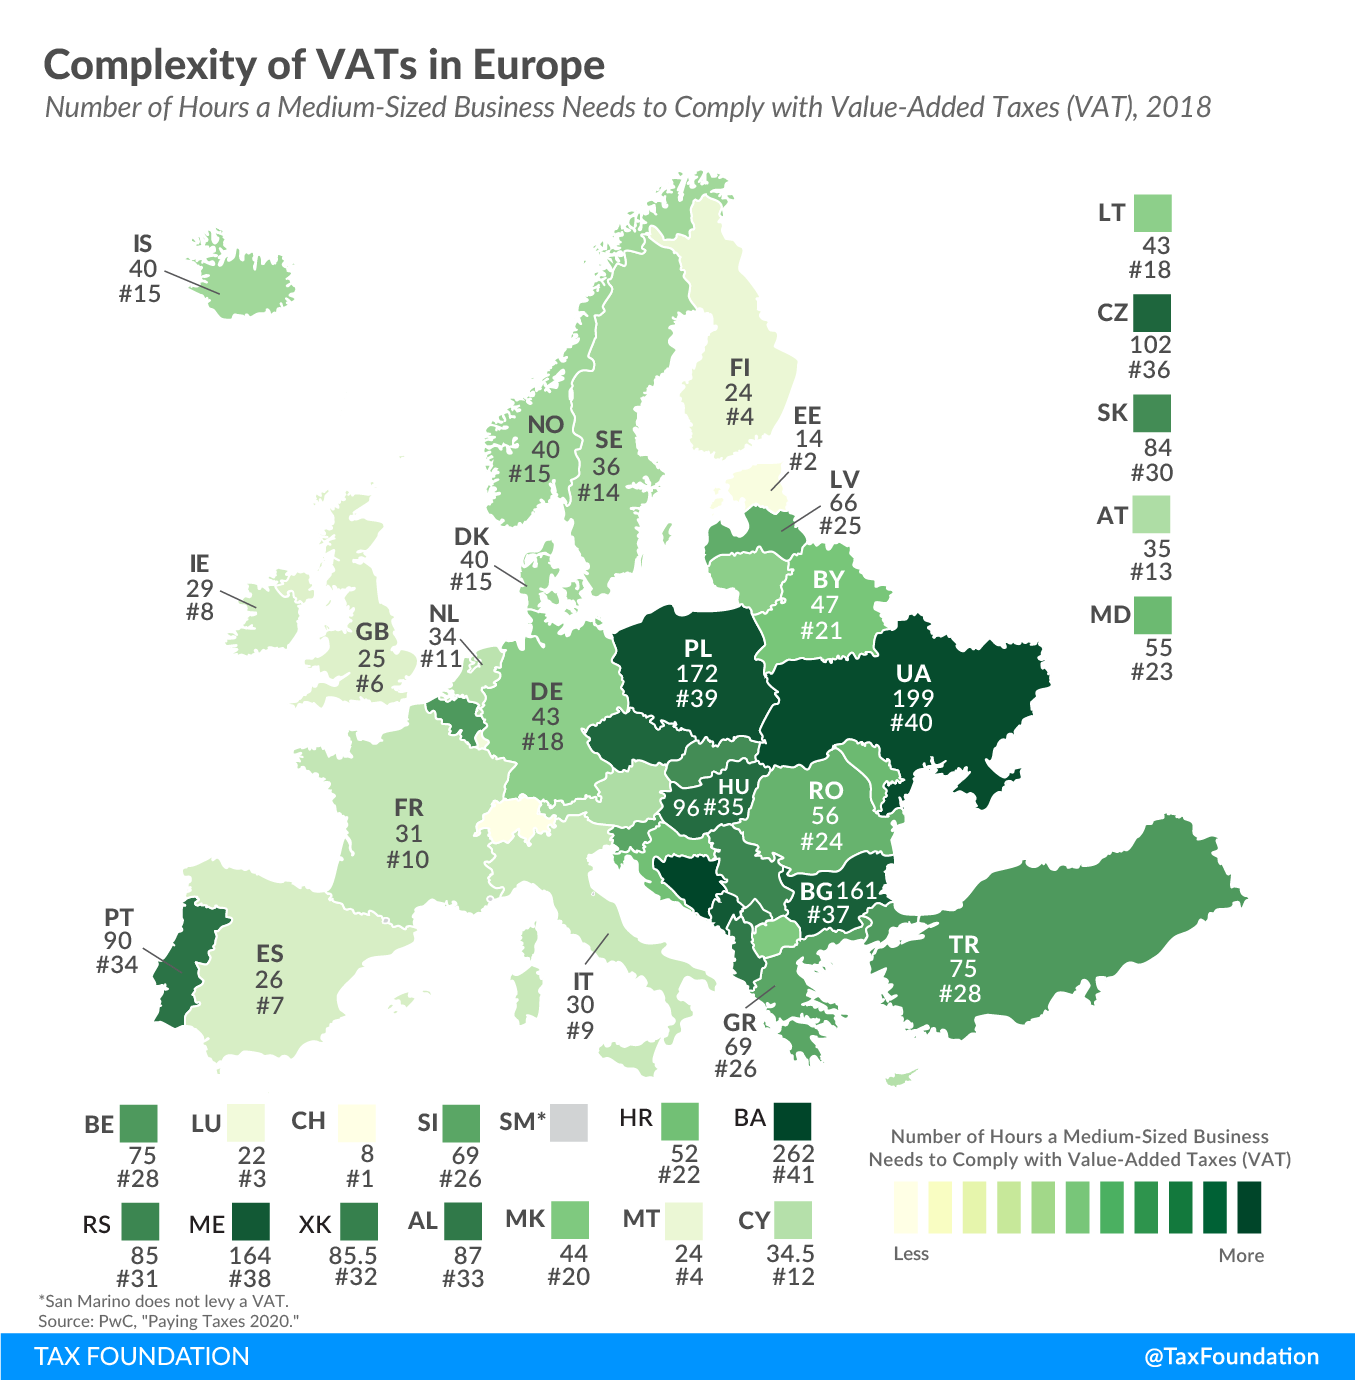 VAT complexity in Europe, complexity of VATs in Europe, Value Added Tax complexity in Europe, Value-Added Tax administrative tax burden in europe 2020, VAT administrative tax burden europe 2020